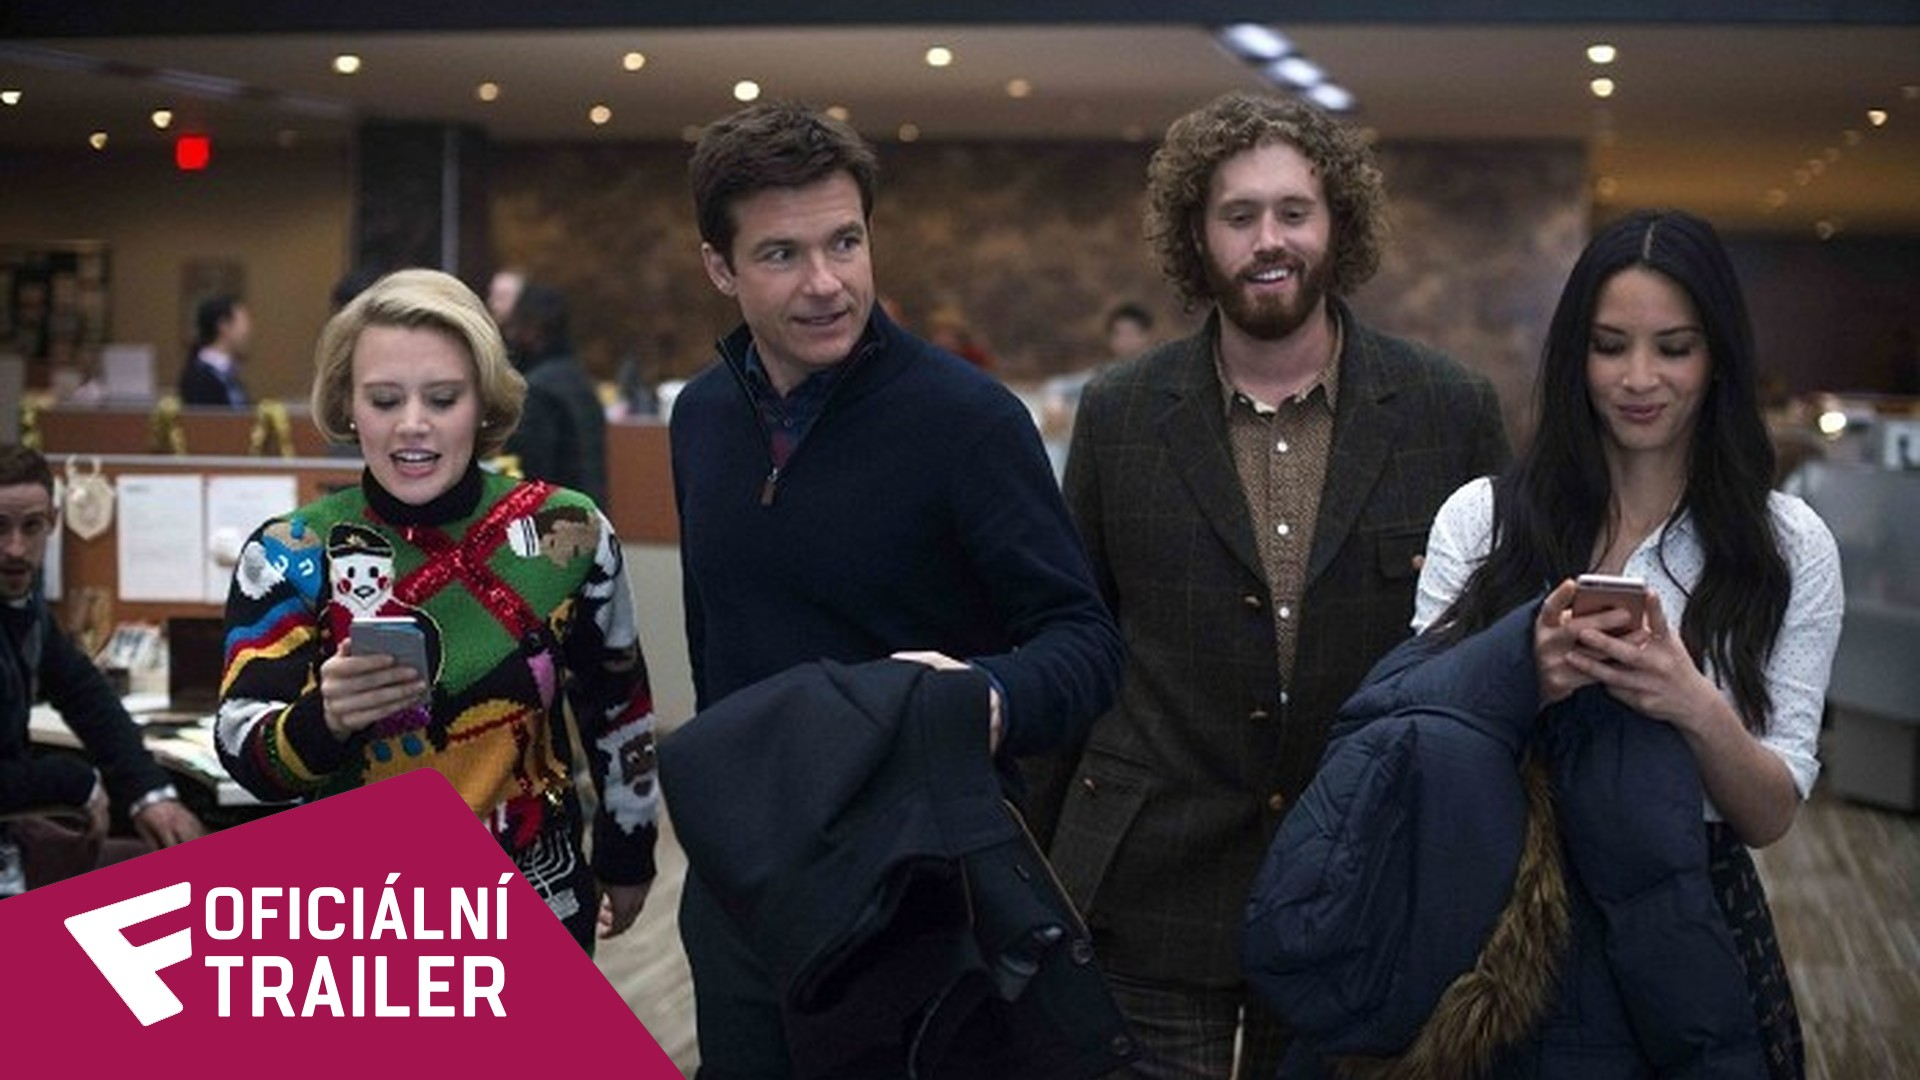 Office Christmas Party - Oficiální Teaser Trailer | Fandíme filmu